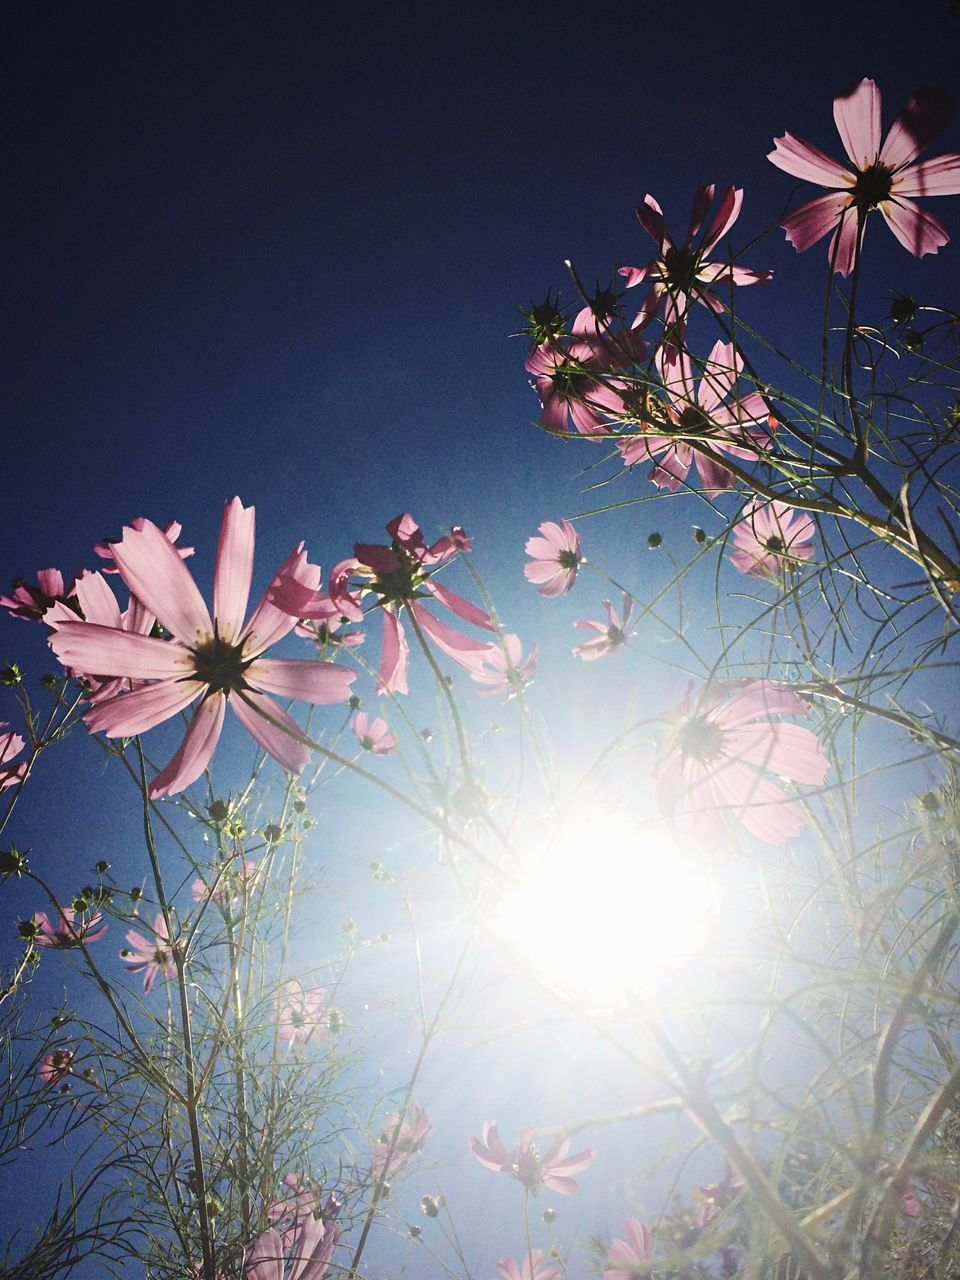 flower, beauty in nature, nature, growth, fragility, sky, sun, sunlight, no people, plant, freshness, blossom, clear sky, tree, branch, low angle view, outdoors, day, blooming, flower head, close-up